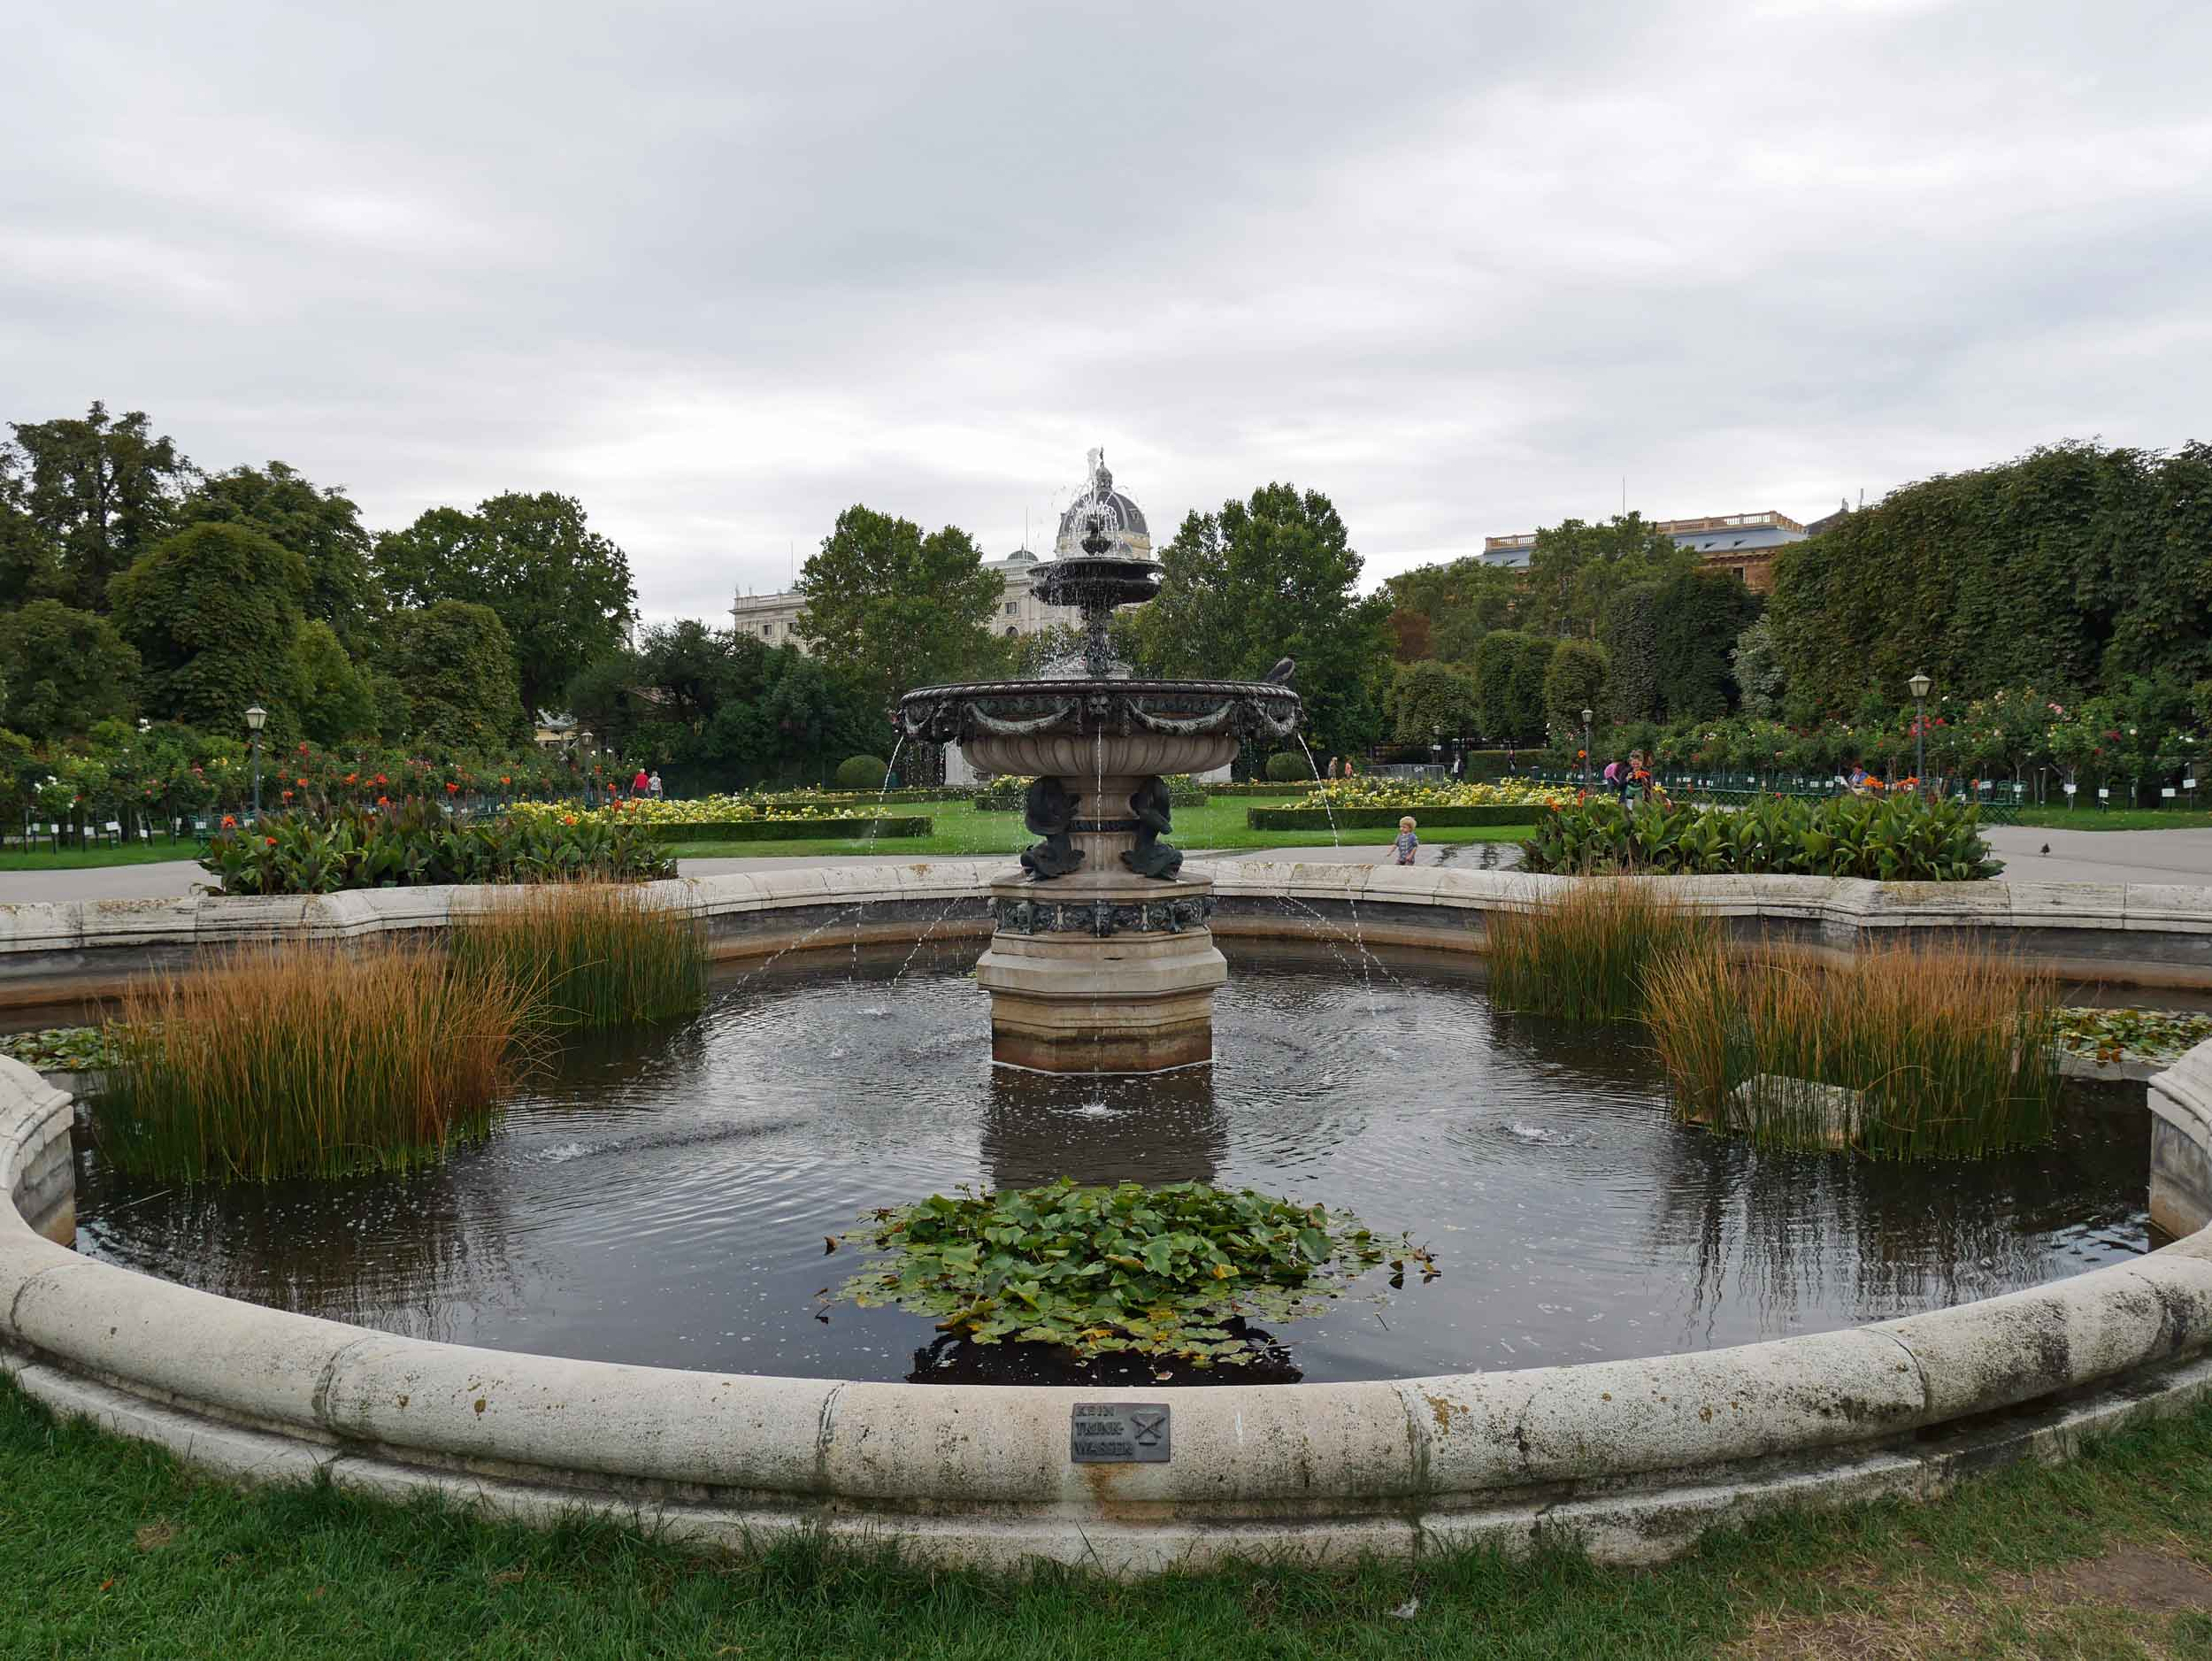 We couldn't resist strolling the rose gardens of the idyllic Volksgartan park, which is part of Hofburg Palace.